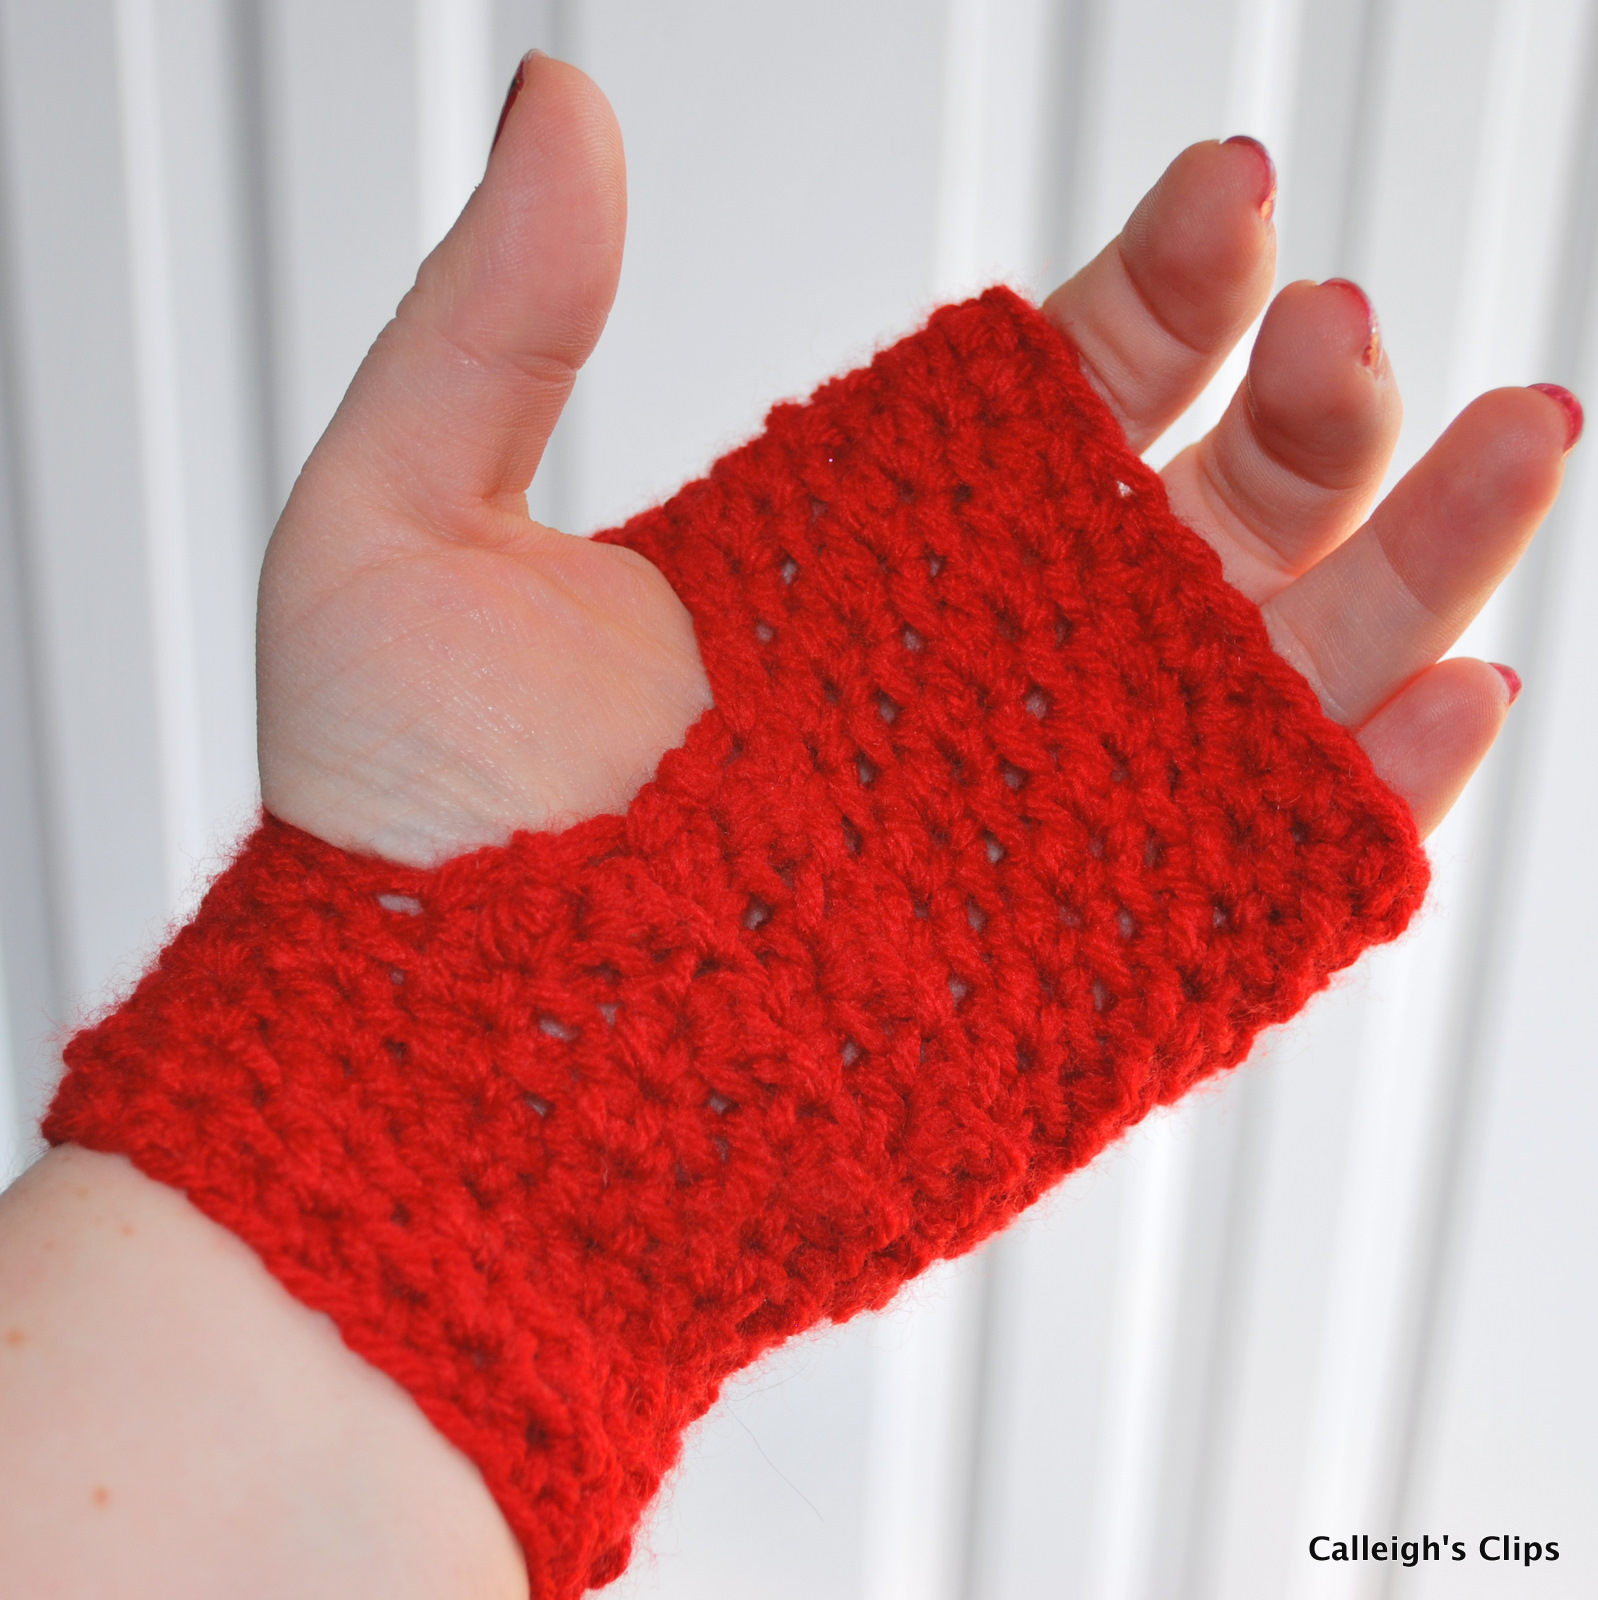 Crochet Patterns Gloves Fingerless : ... Crochet Creations: Textured Fingerless Gloves : Free Crochet Pattern